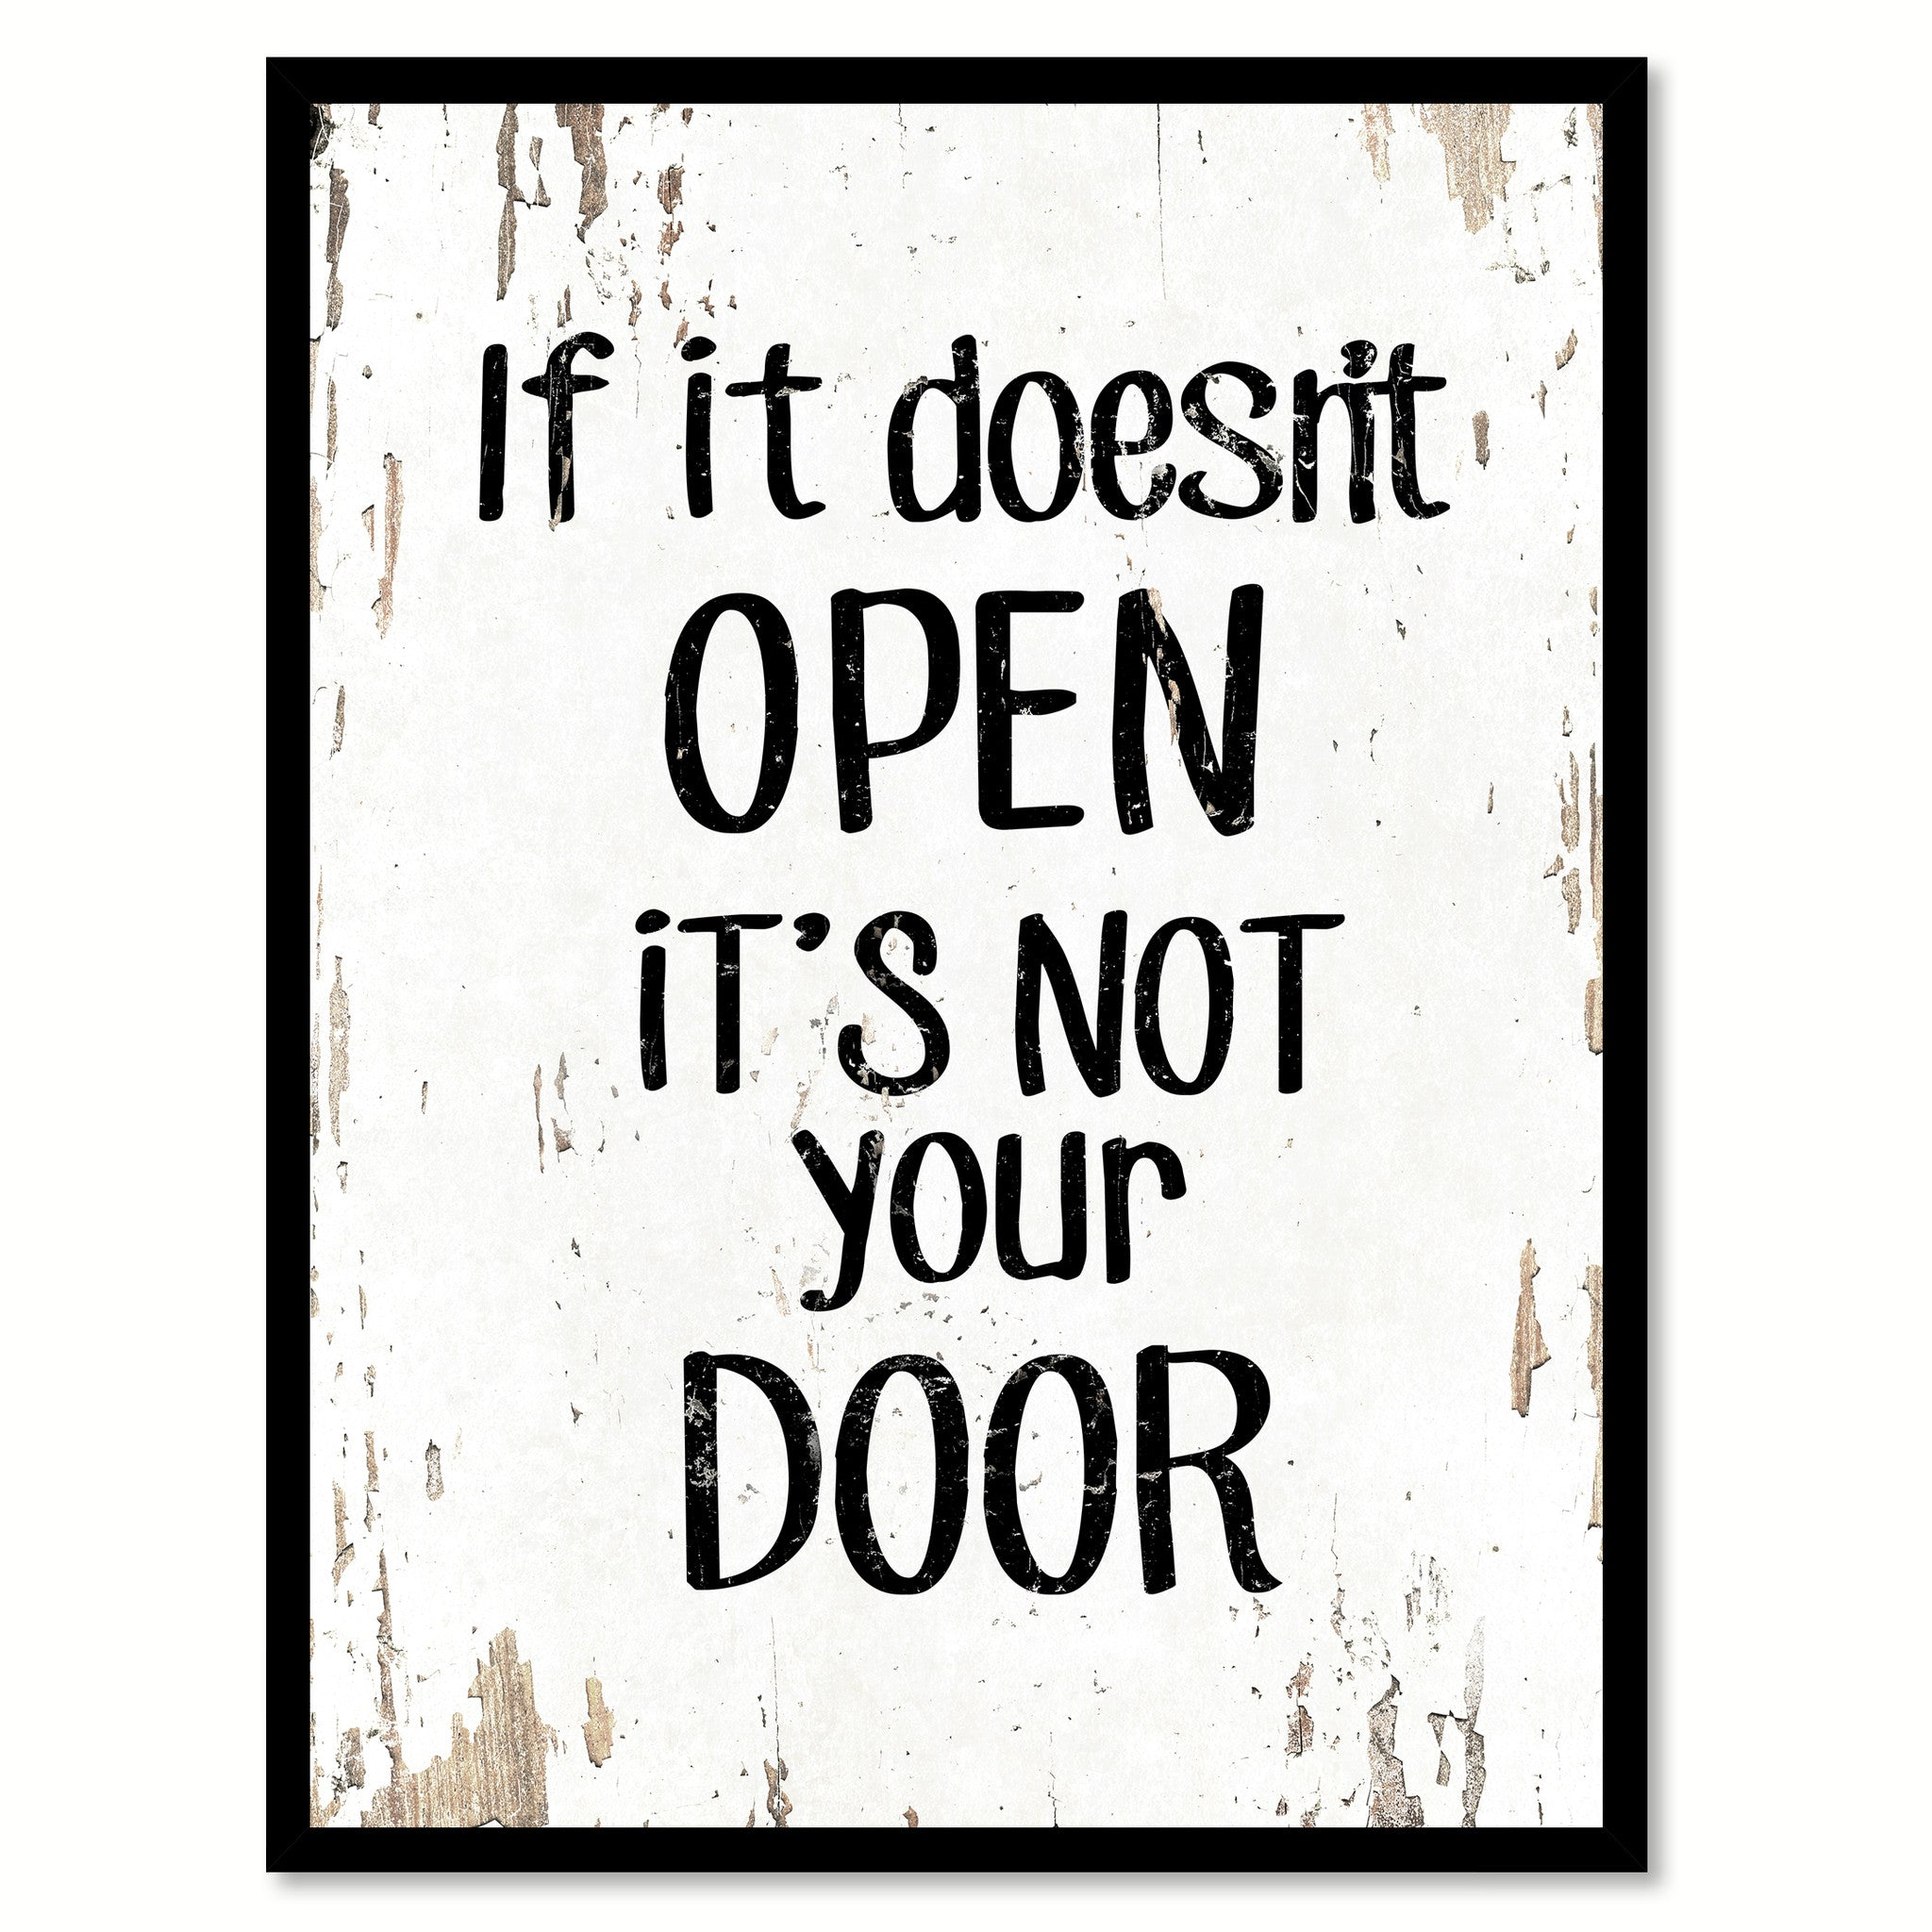 Humor Inspirational Quotes: If It Doesn't Open It's Not Your Door Inspirational